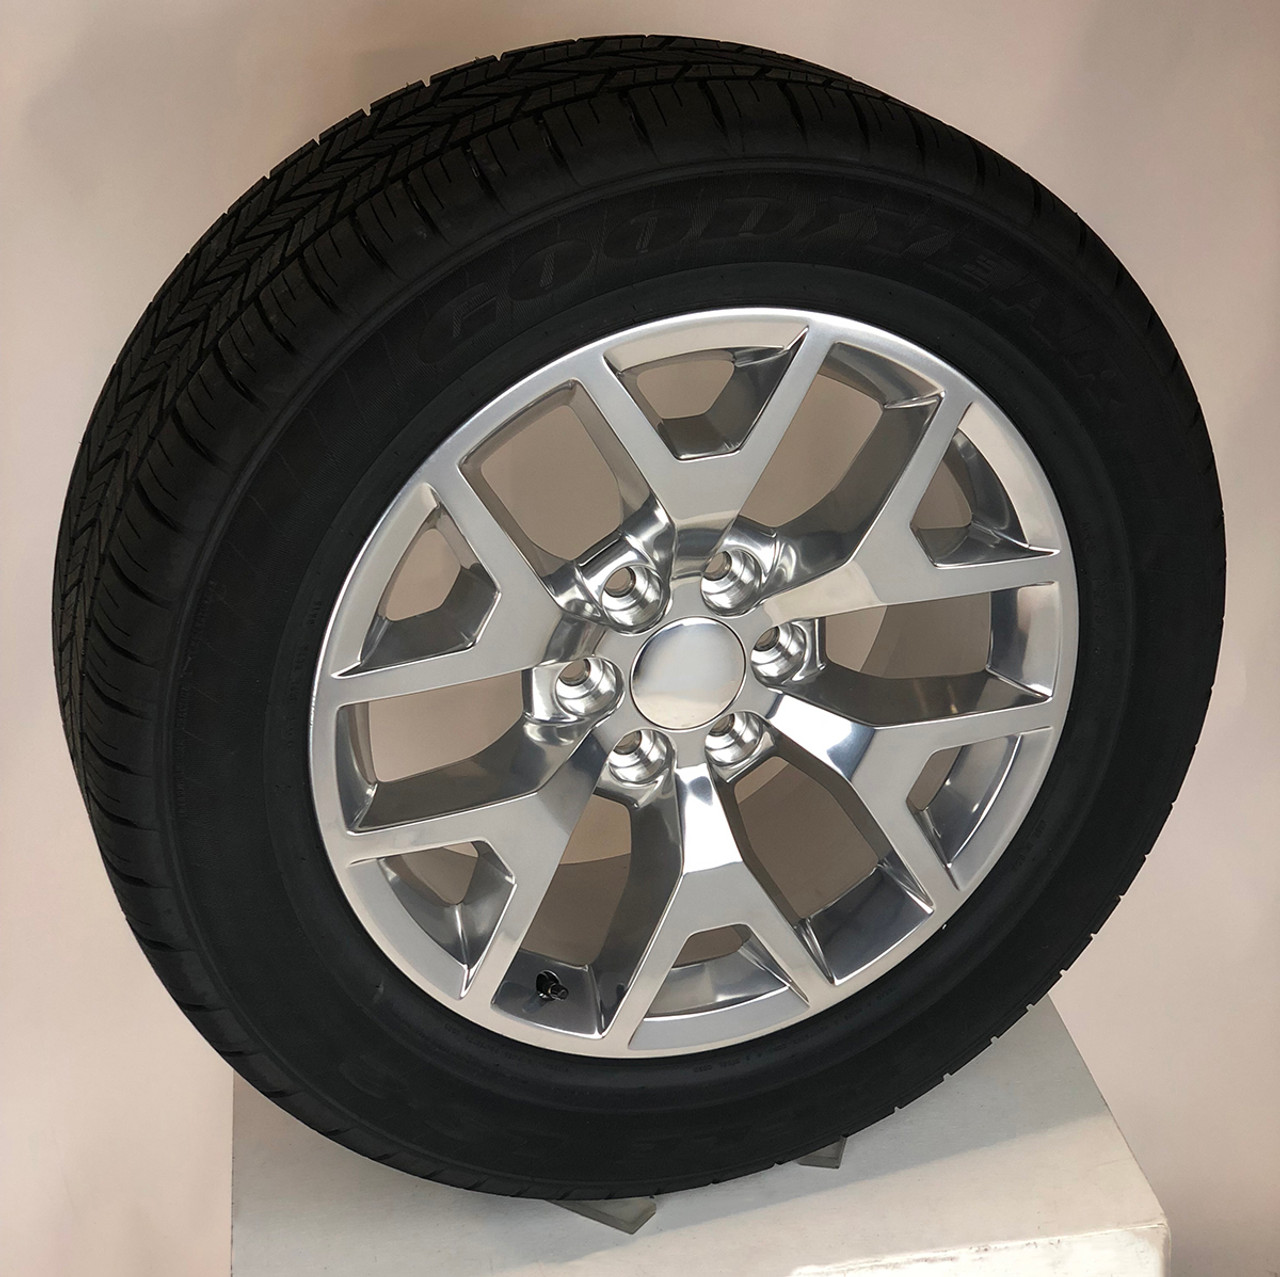 "Polished 20"" Honeycomb Wheels with Goodyear Tires for Chevy Silverado, Tahoe, Suburban, Avalanche"